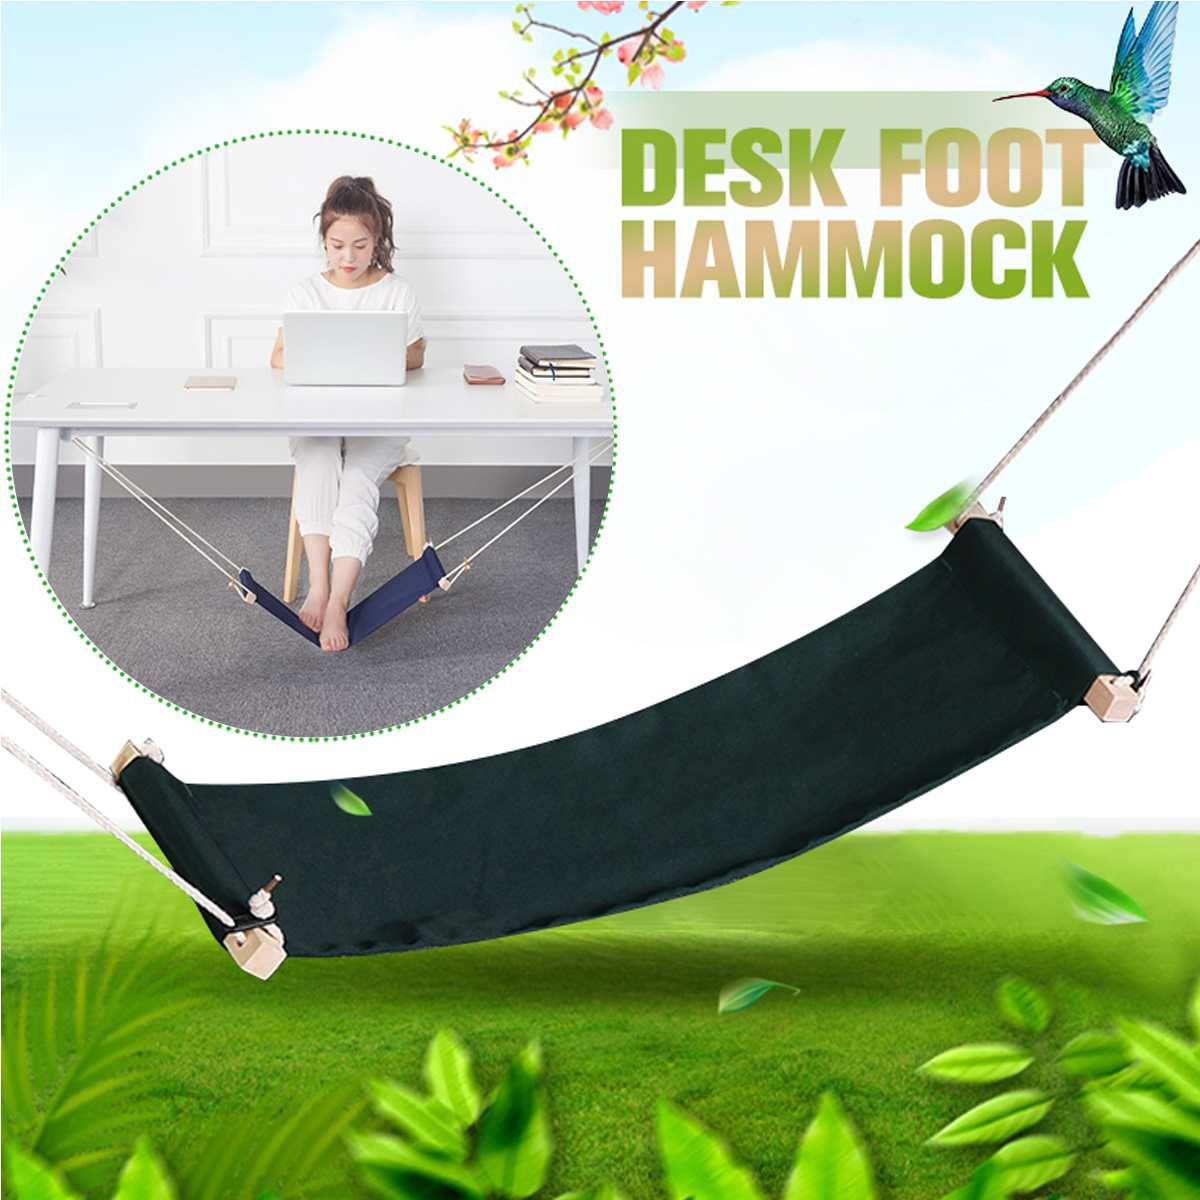 Feet Hammock Desk Foot-Rest Office Adjustable Home The Surfing Internet Welfare Hobbies title=